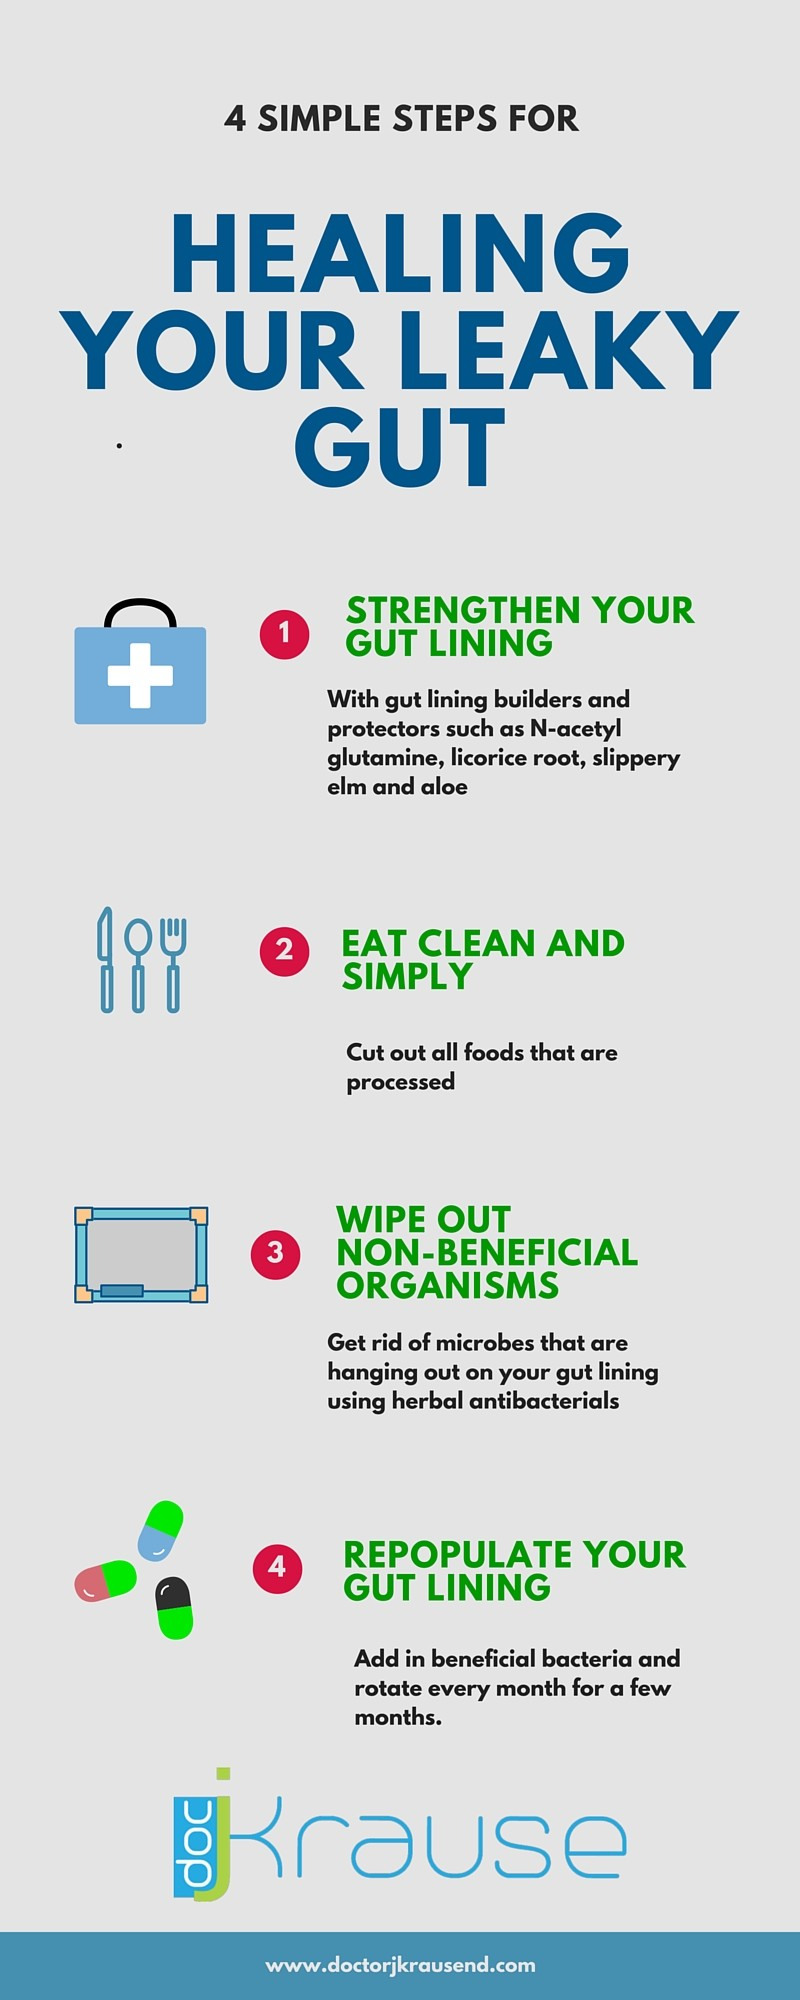 4 simple steps for healing your leaky gut